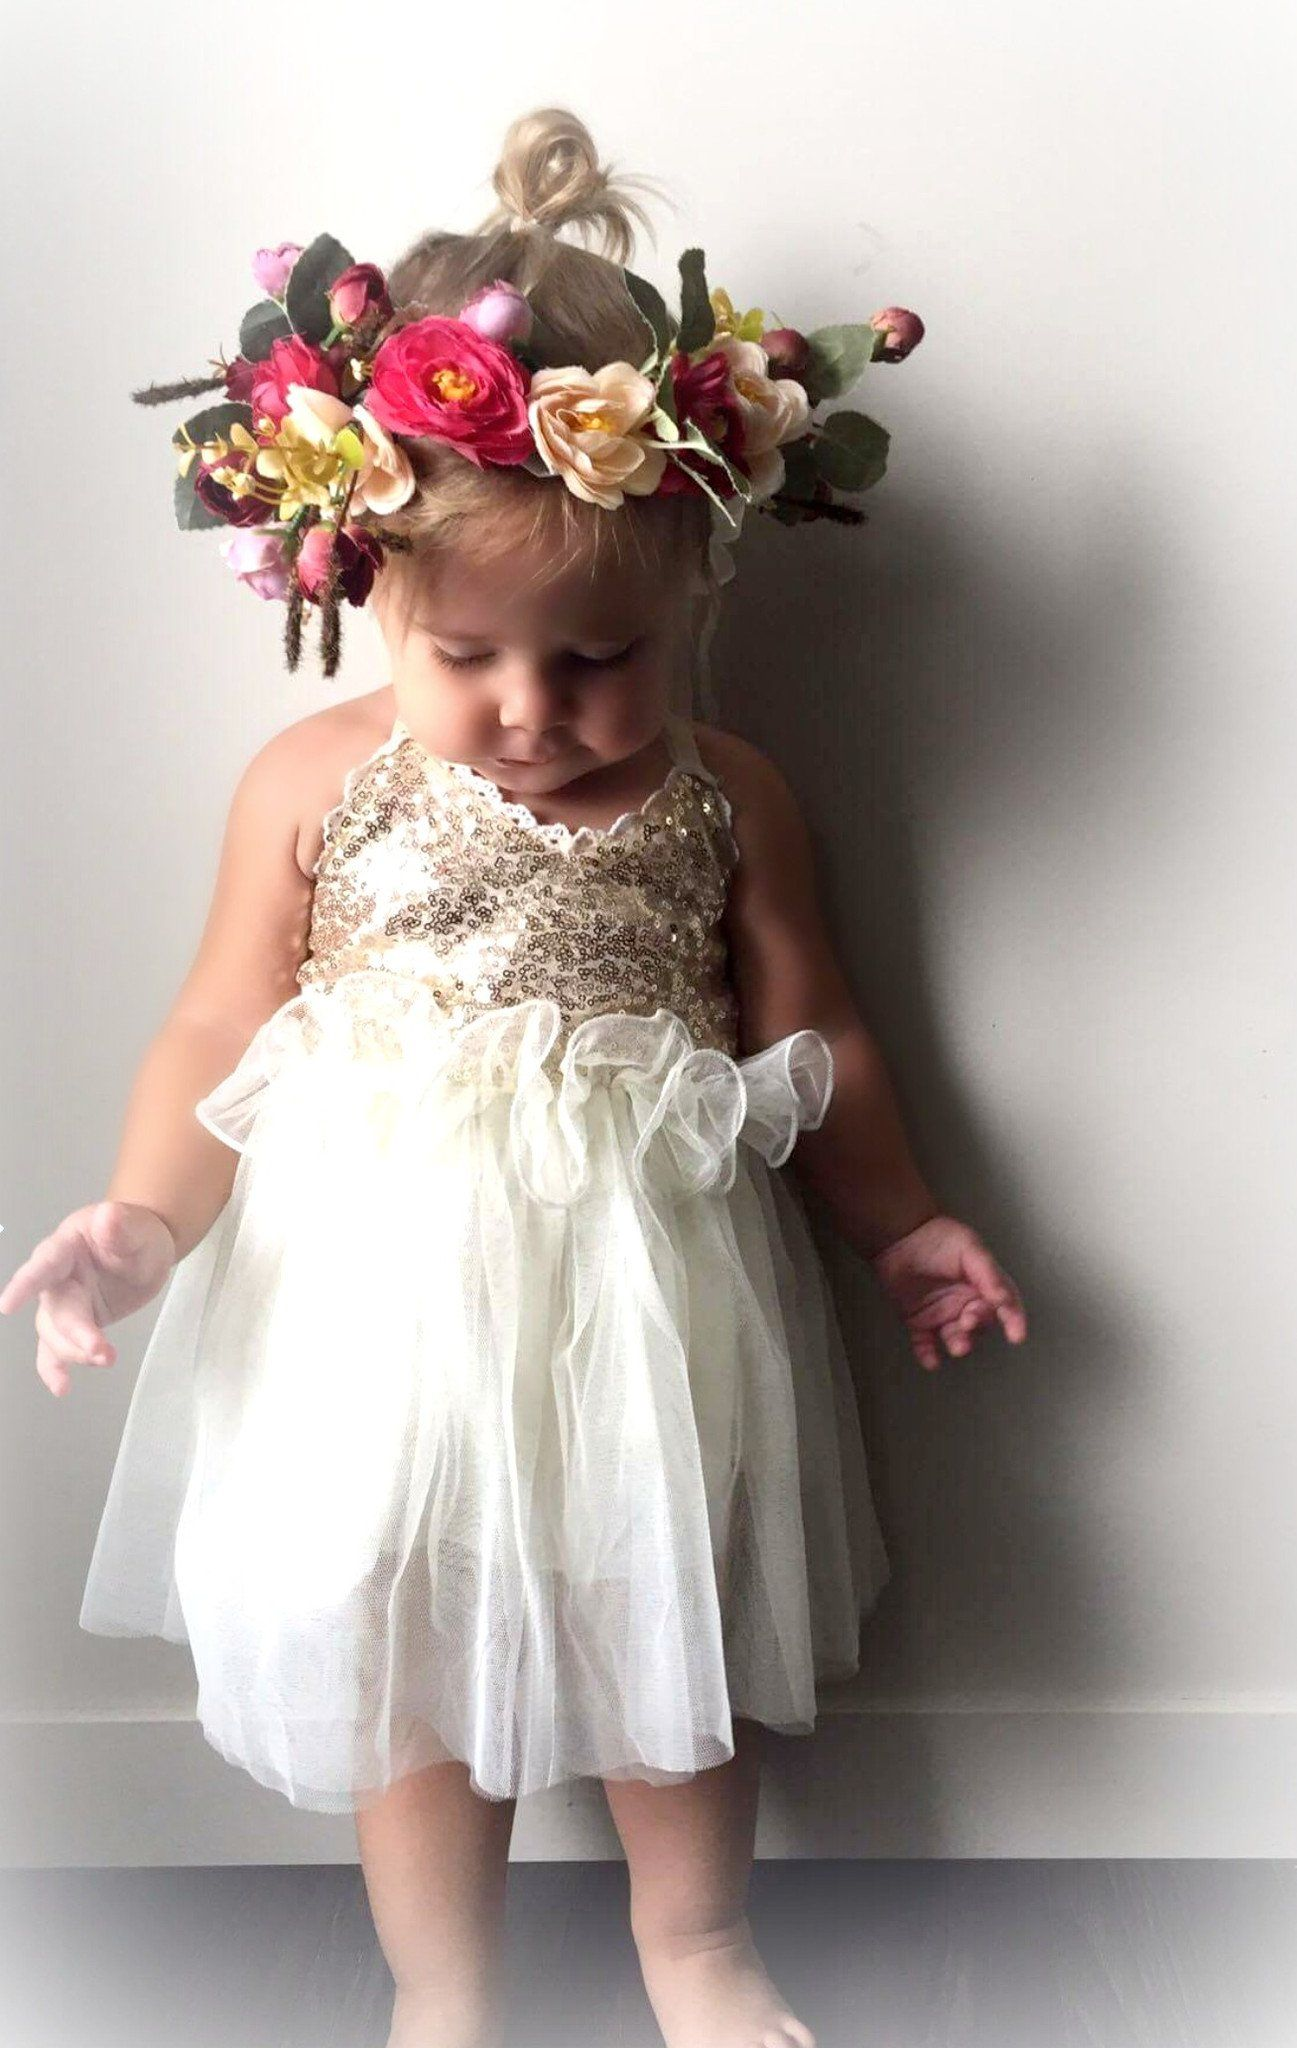 Searching For Baby Birthday Dress Online Visit Us And Stunning Cream Cold Tulle Your Little Princess Special Occasion Dresses Available